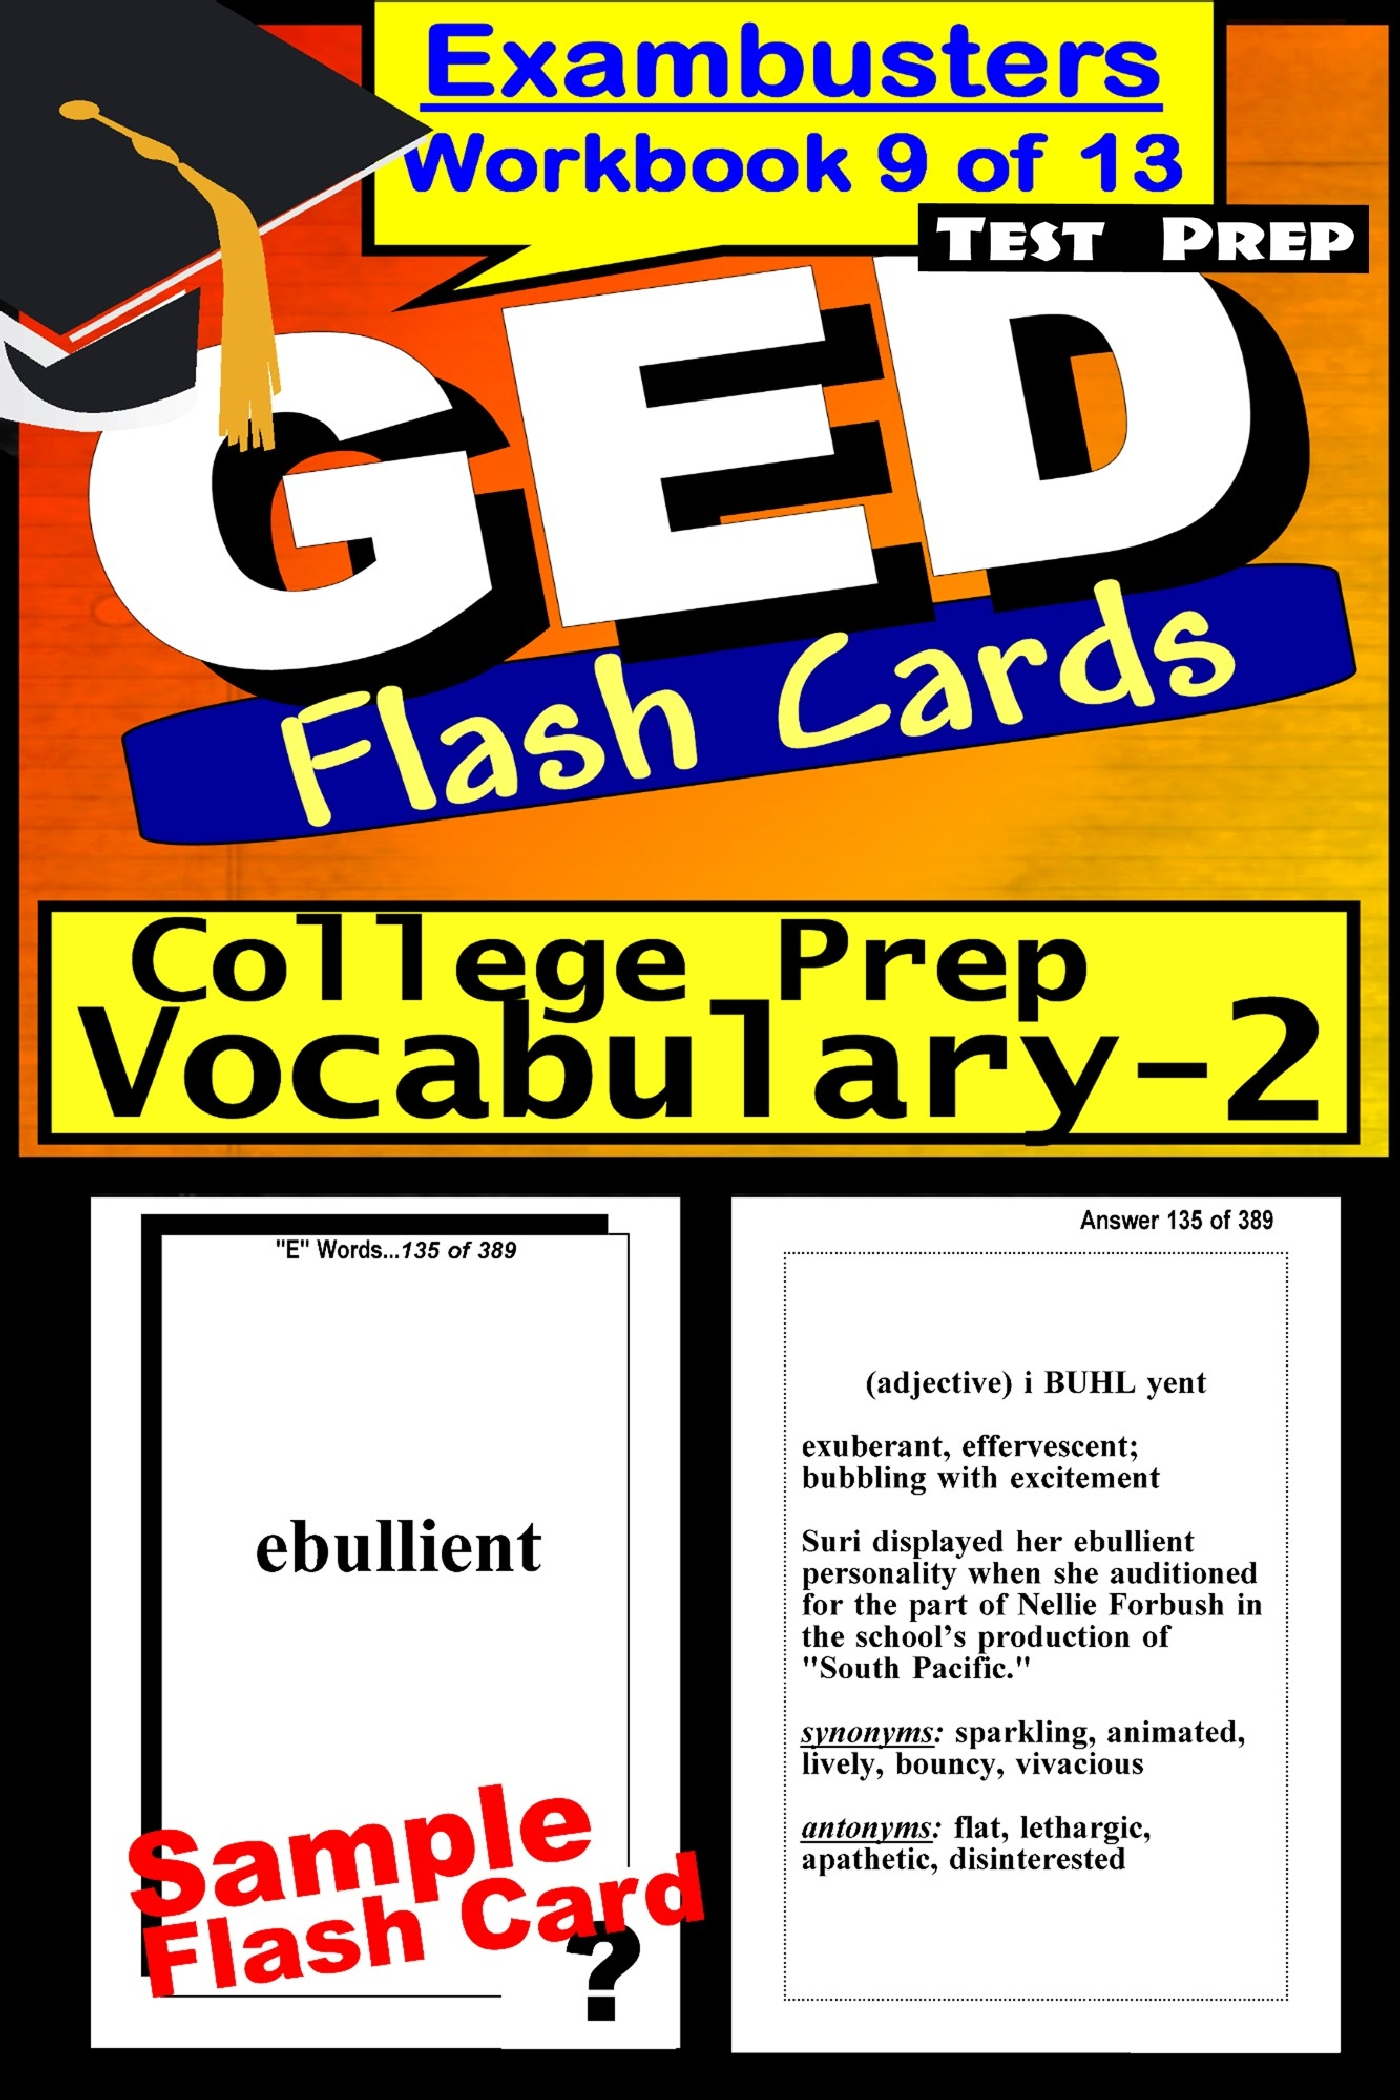 GED Test Prep College Prep Vocabulary 2 Review--Exambusters Flash Cards--Workbook 9 of 13: GED Exam Study Guide